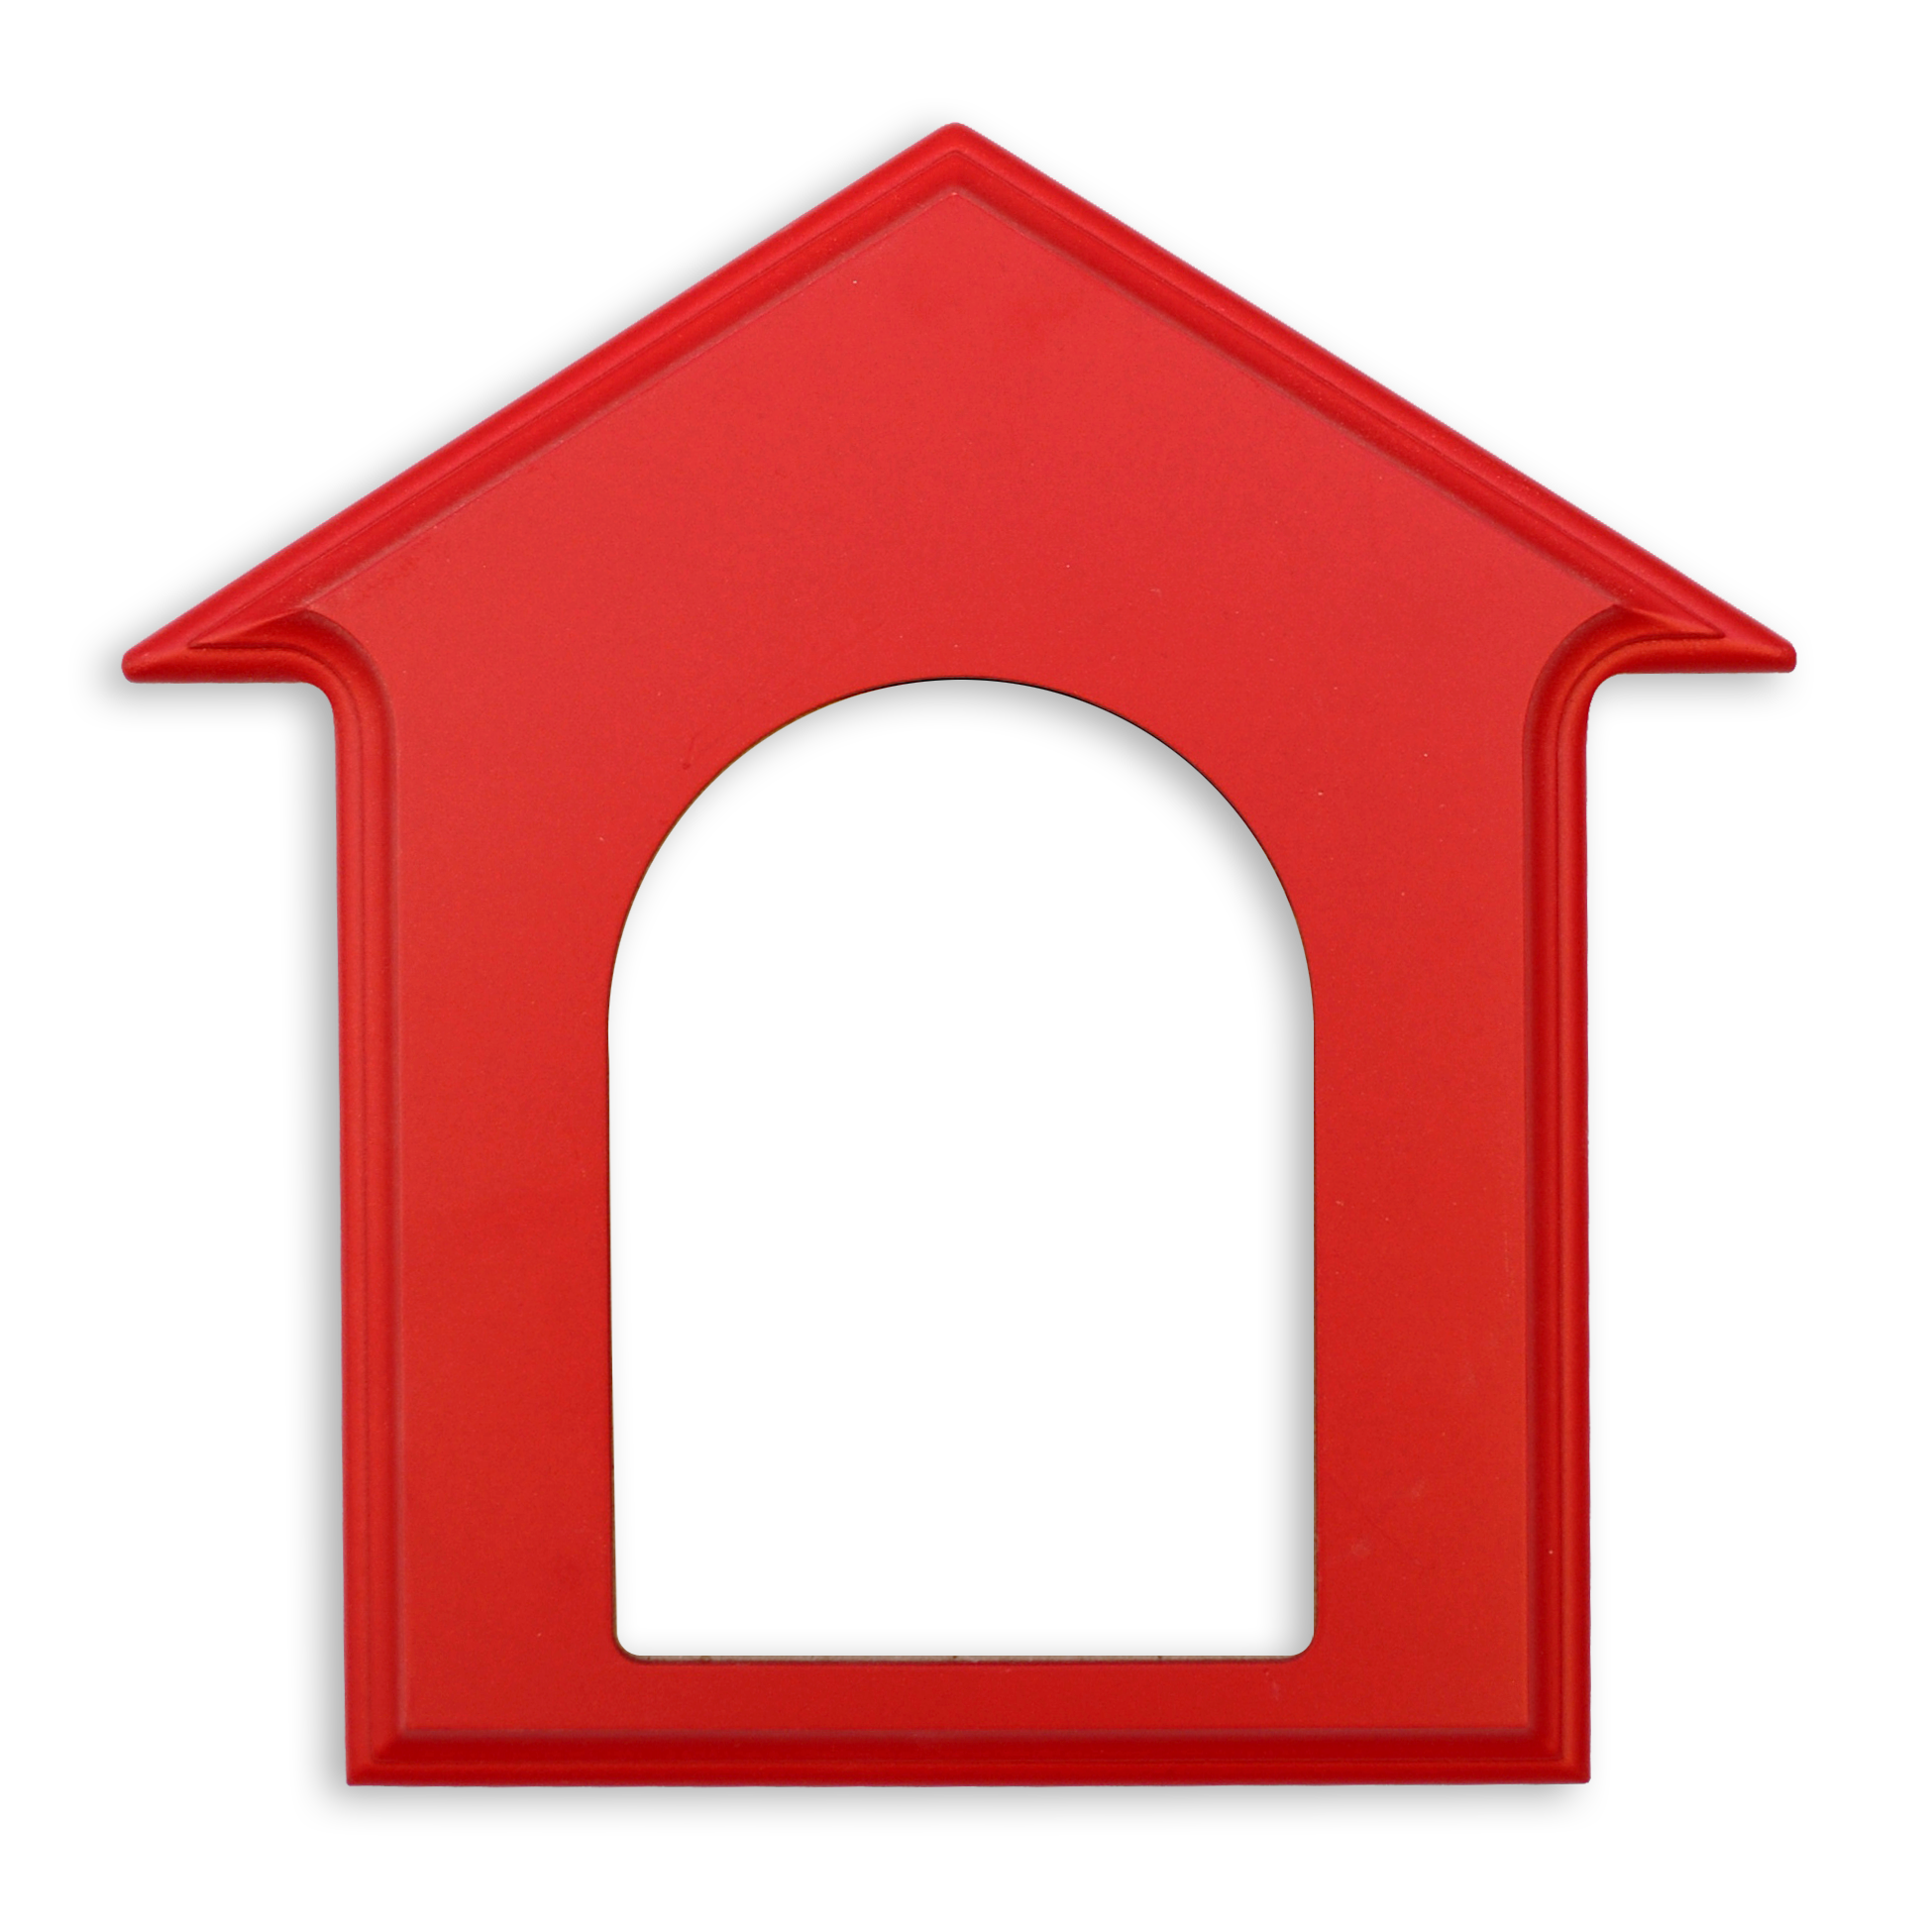 Frames clipart dog.  collection of red